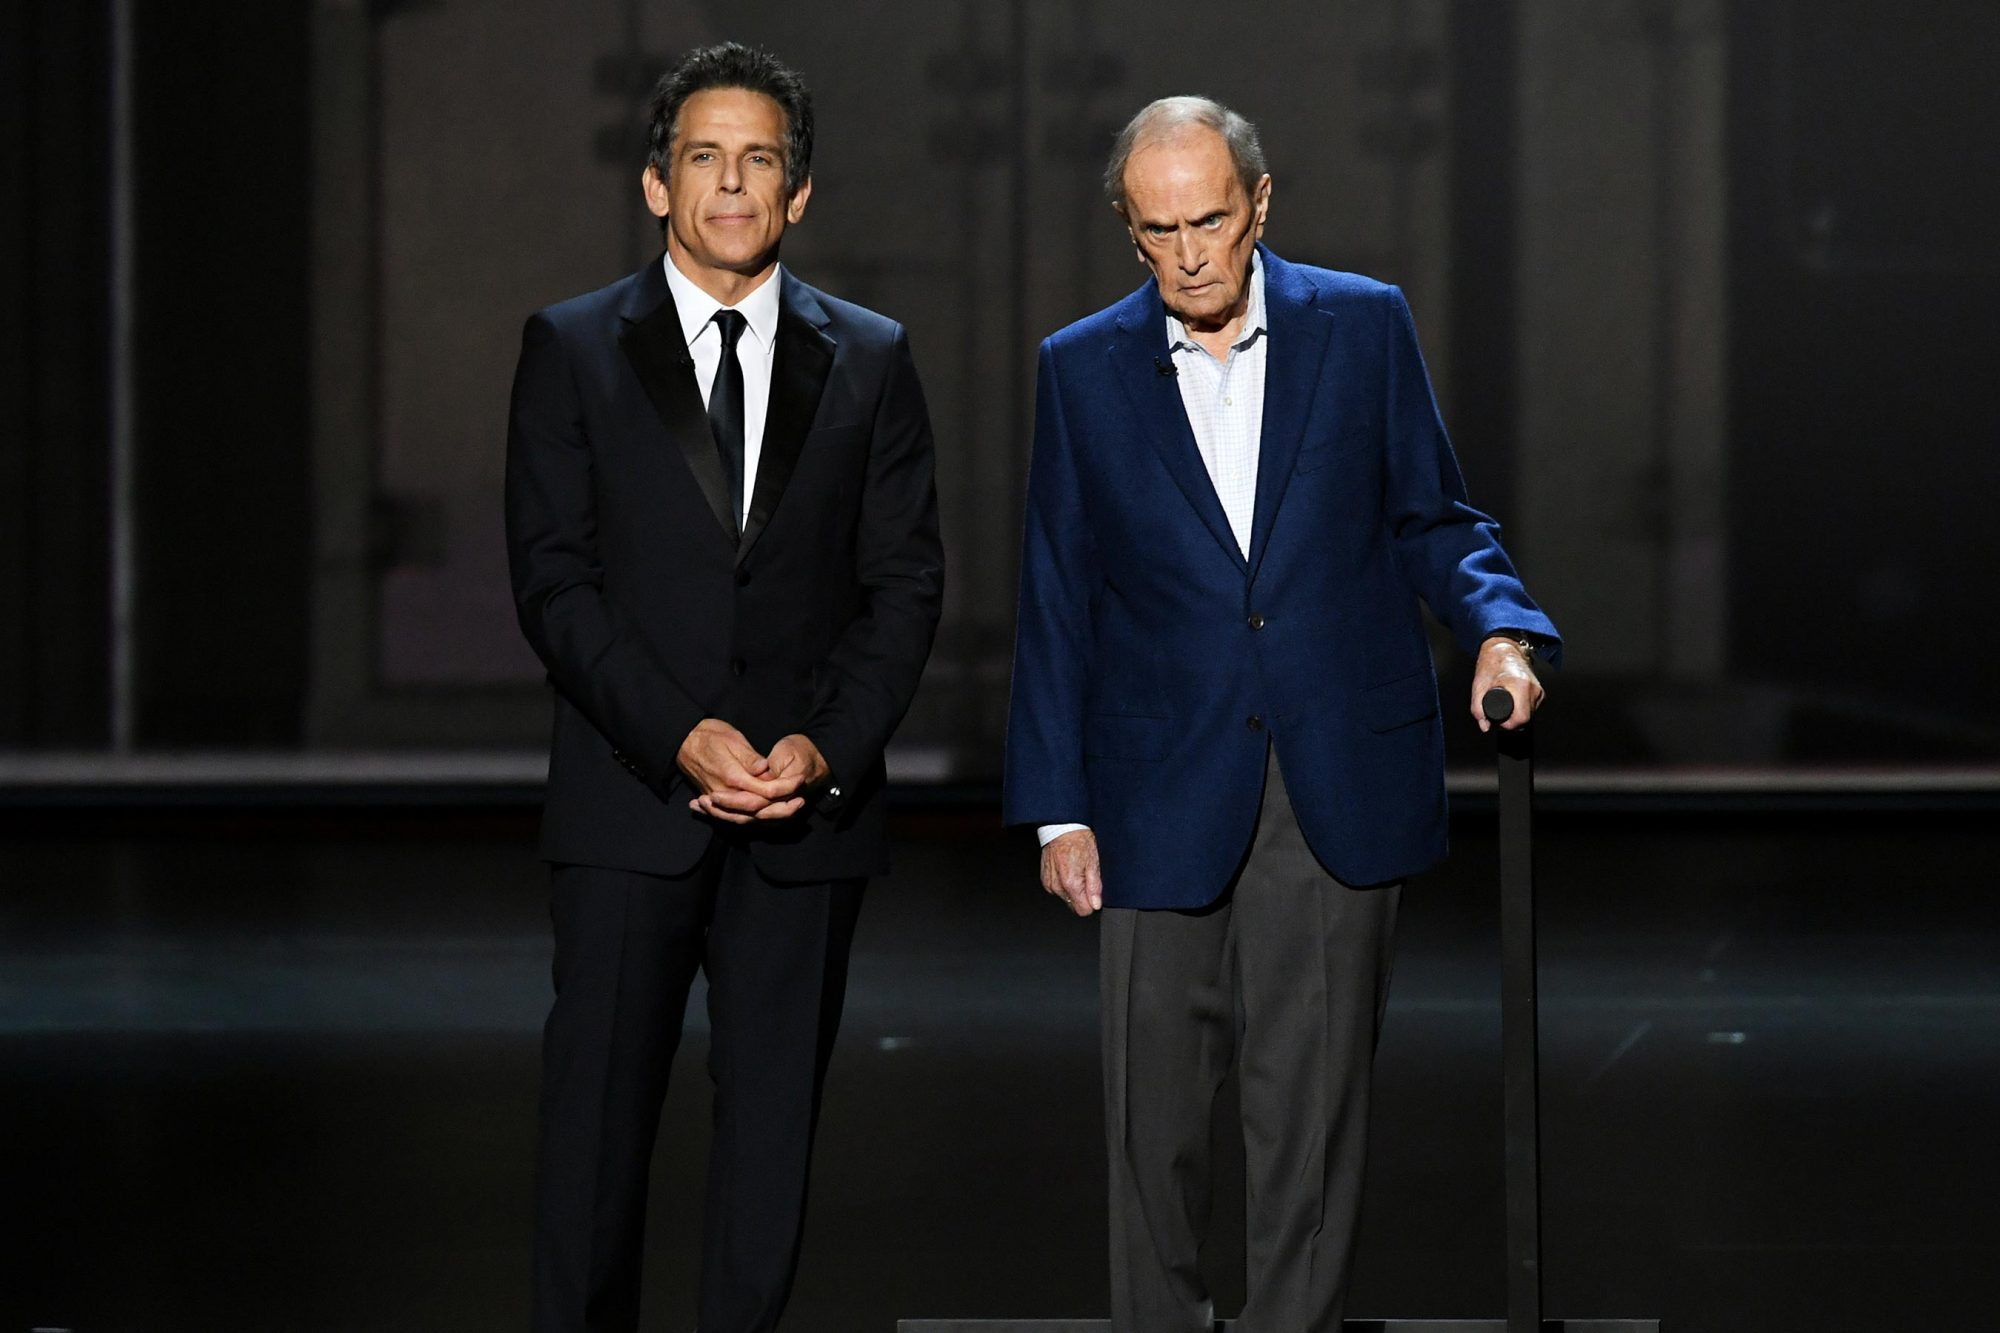 Ben Stiller and Bob Newhart